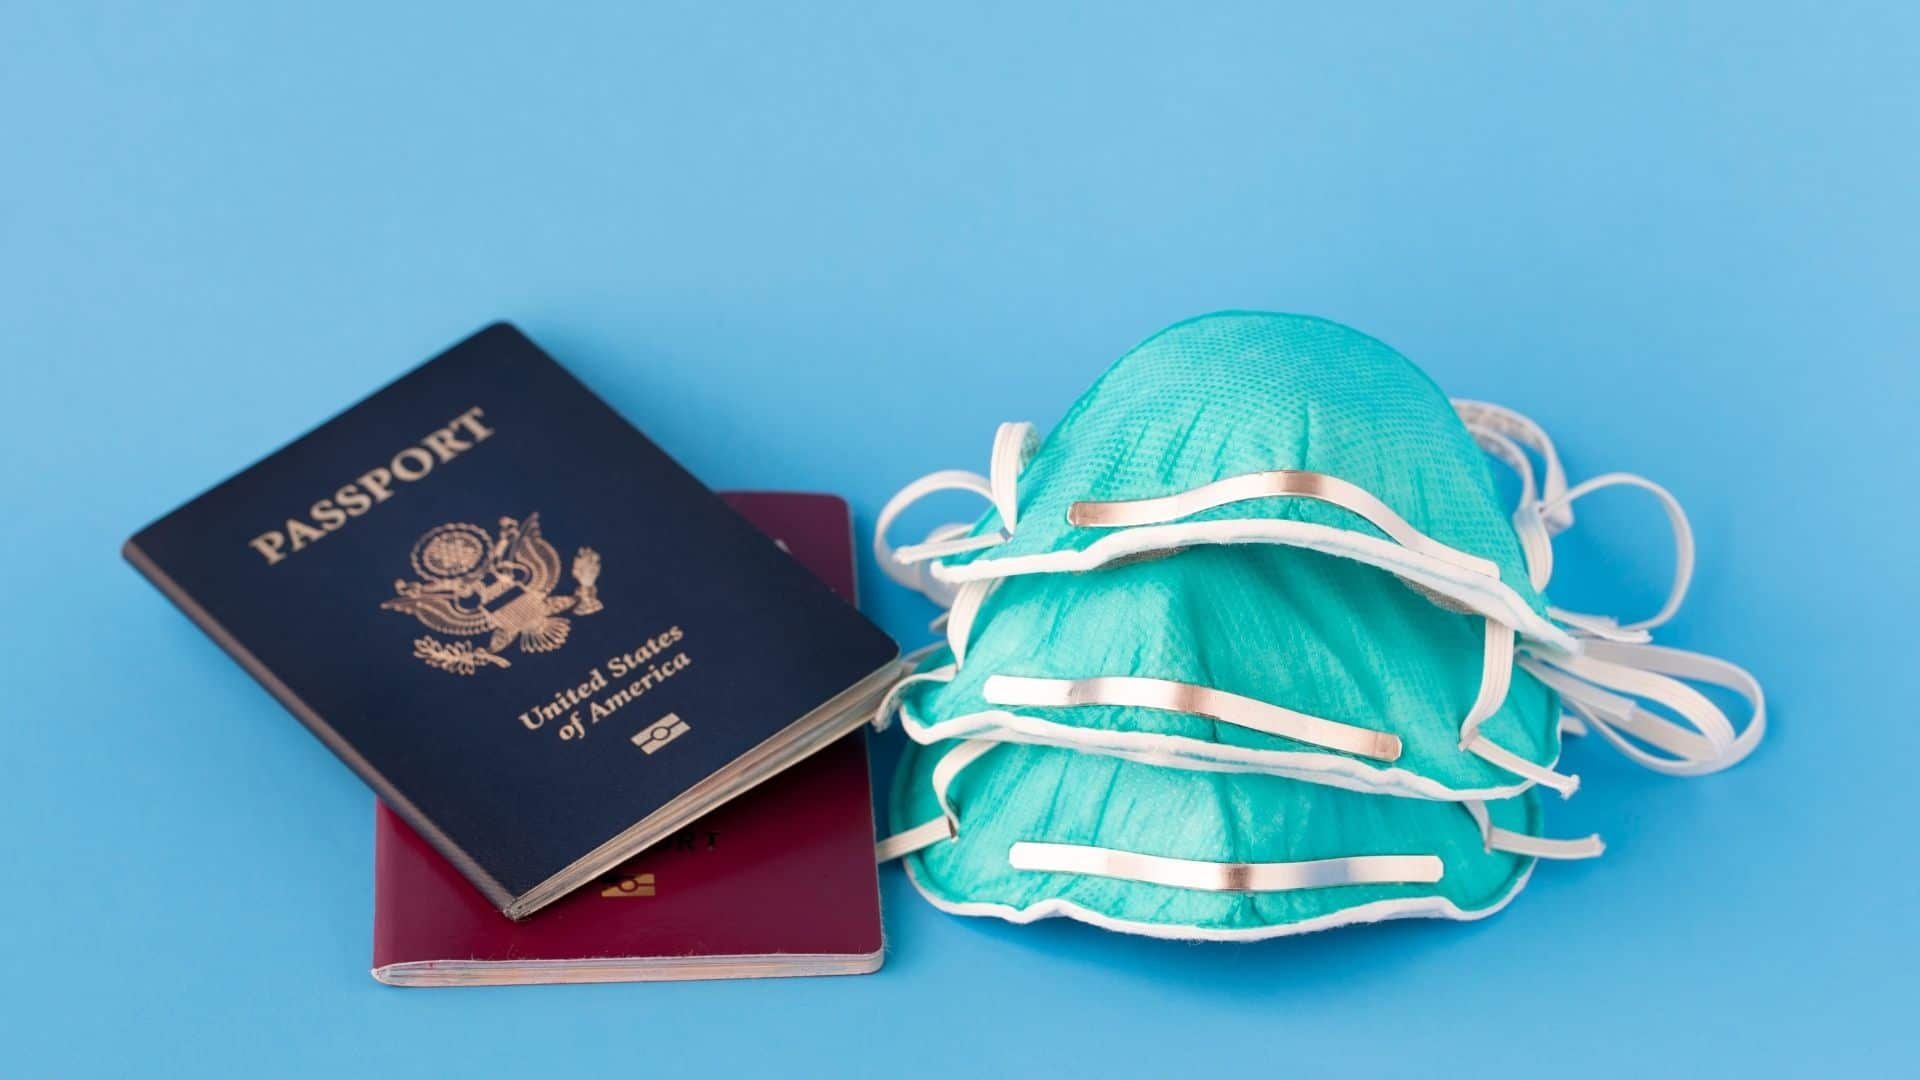 13 - Coronavirus and Travel: What You Need to Know